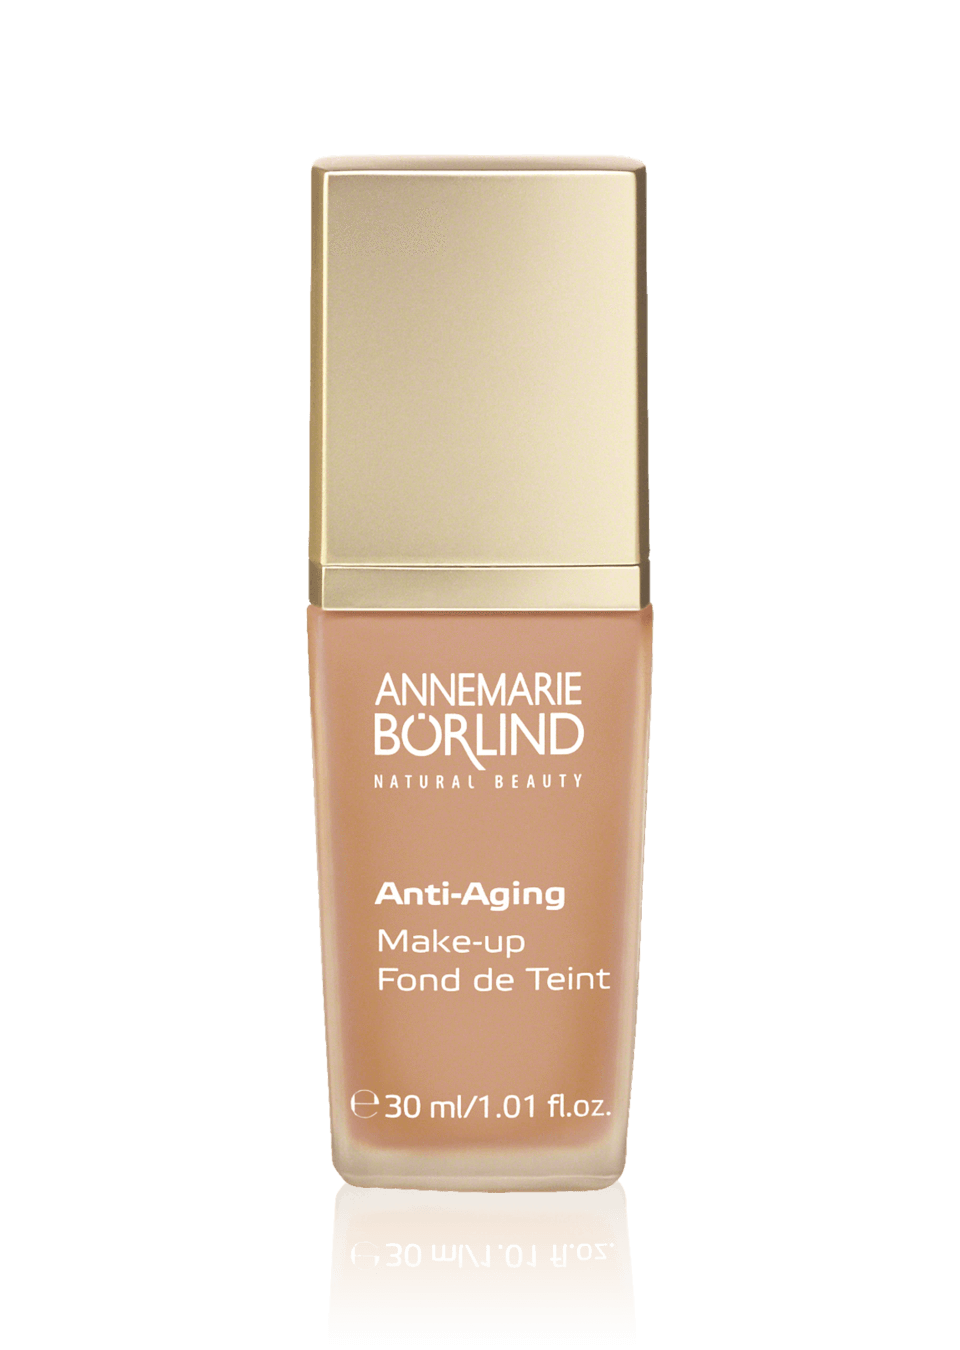 Personal Care - Annemarie Borlind Anti-Aging Makeup - Beige, 30mL